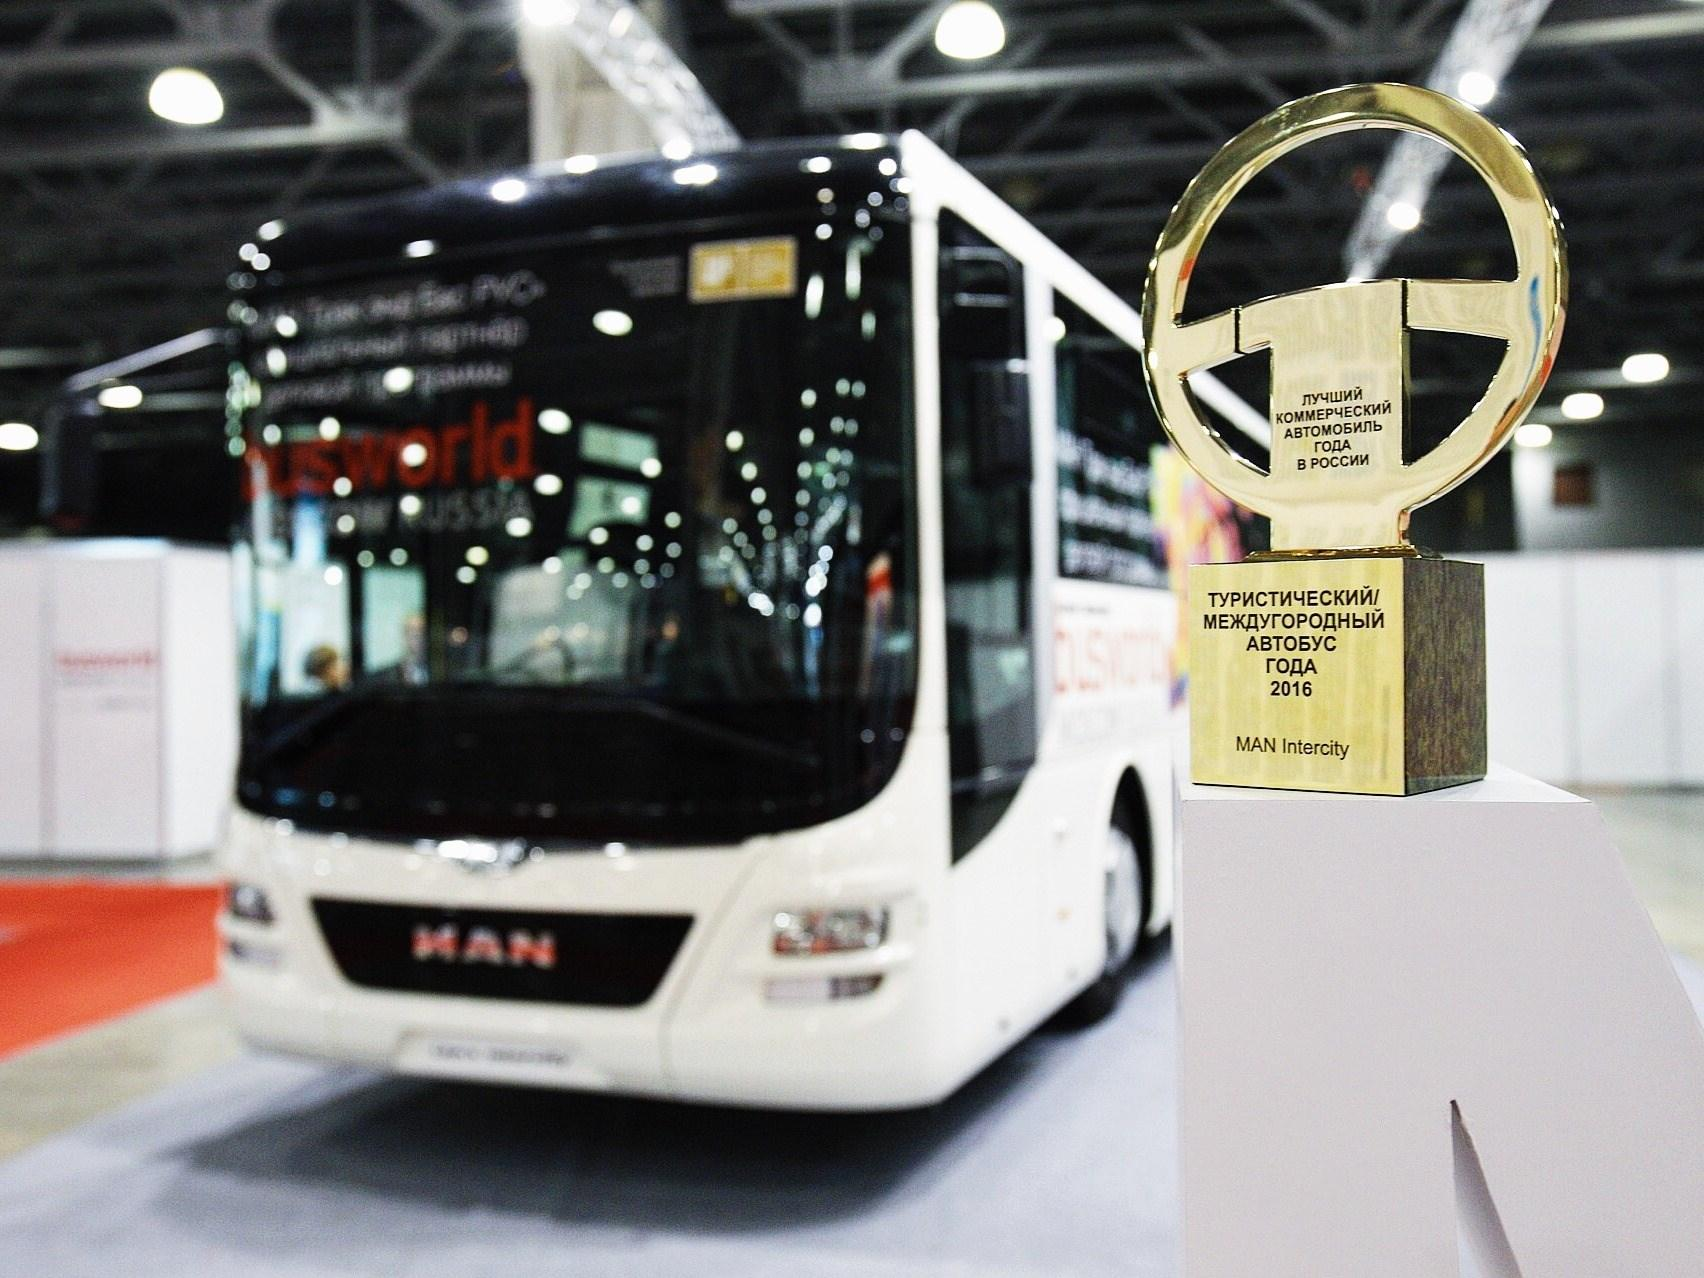 The jury of the 'Best Commercial Vehicles of the Year in Russia' competition awarded the MAN Lion's Intercity the top prize in the 'Coach:Intercity Bus' category.